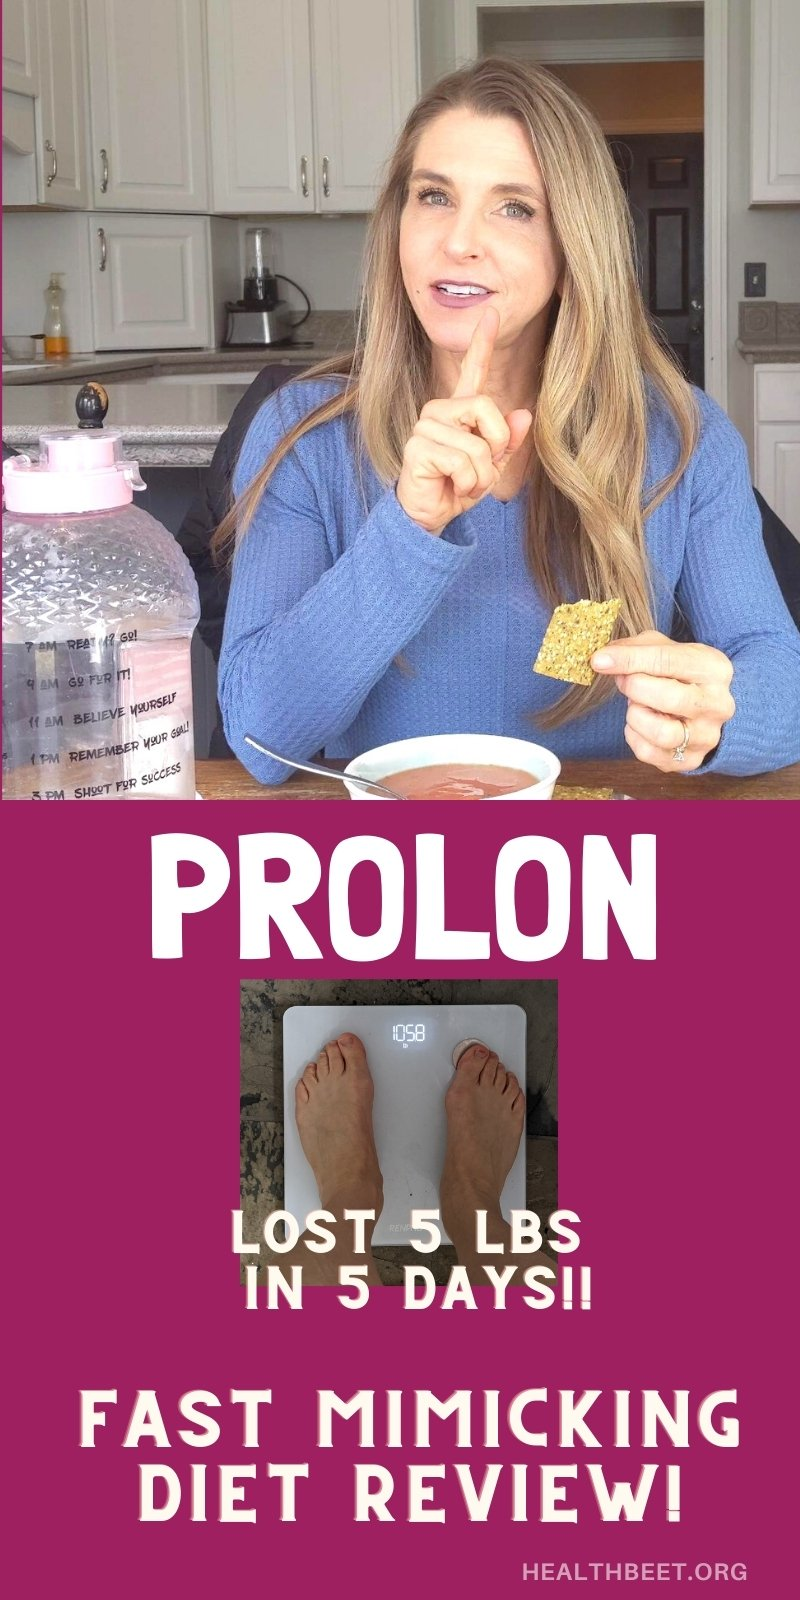 Prolon fast mimicking diet review lost 5 lbs in 5 days